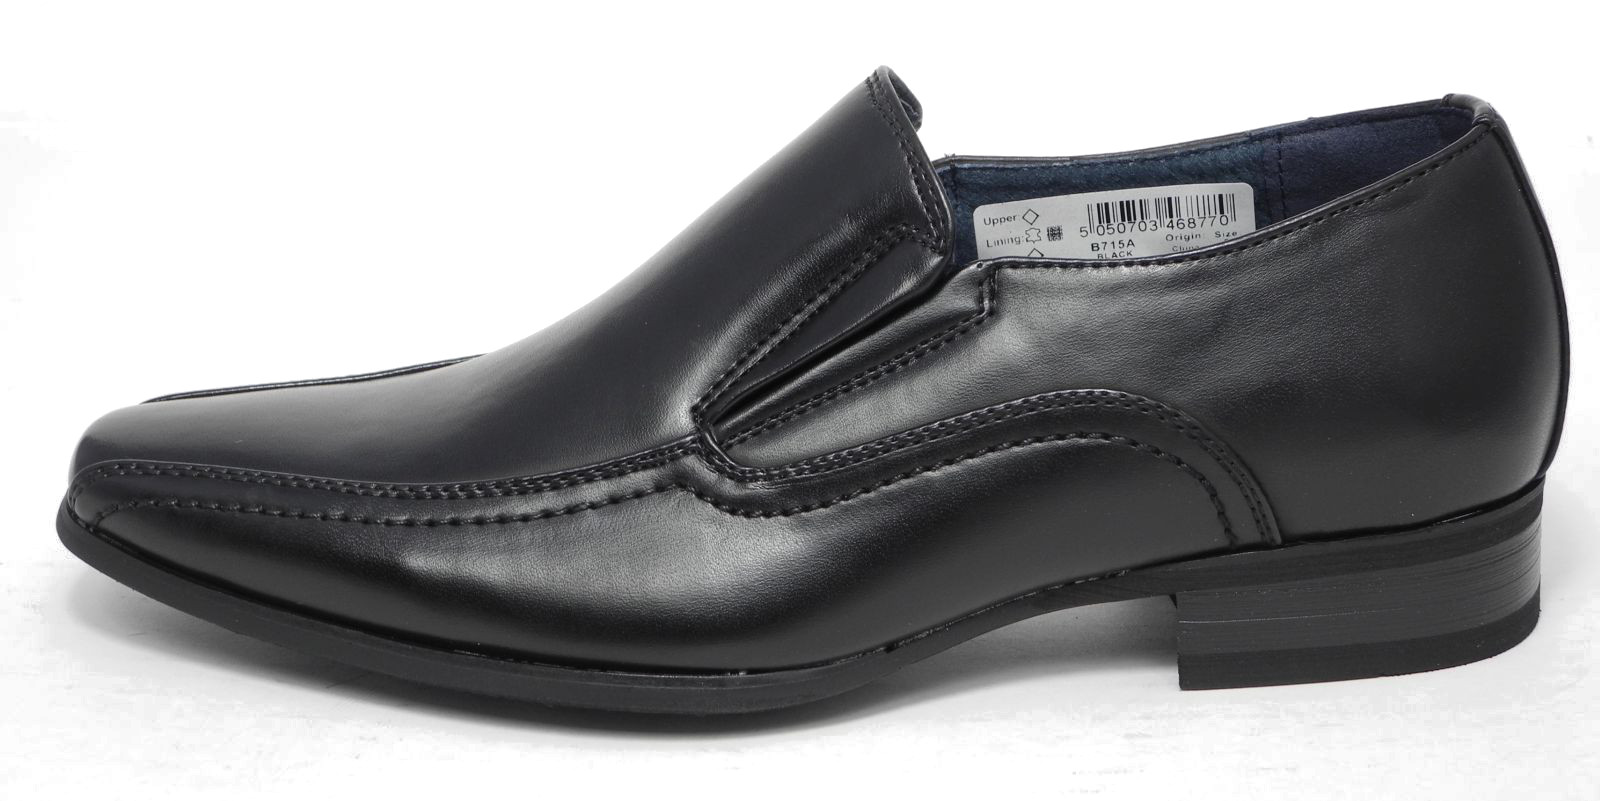 Beckett Boys Formal Lace Up Shoe in Black-20330 advise to wear in autumn in 2019